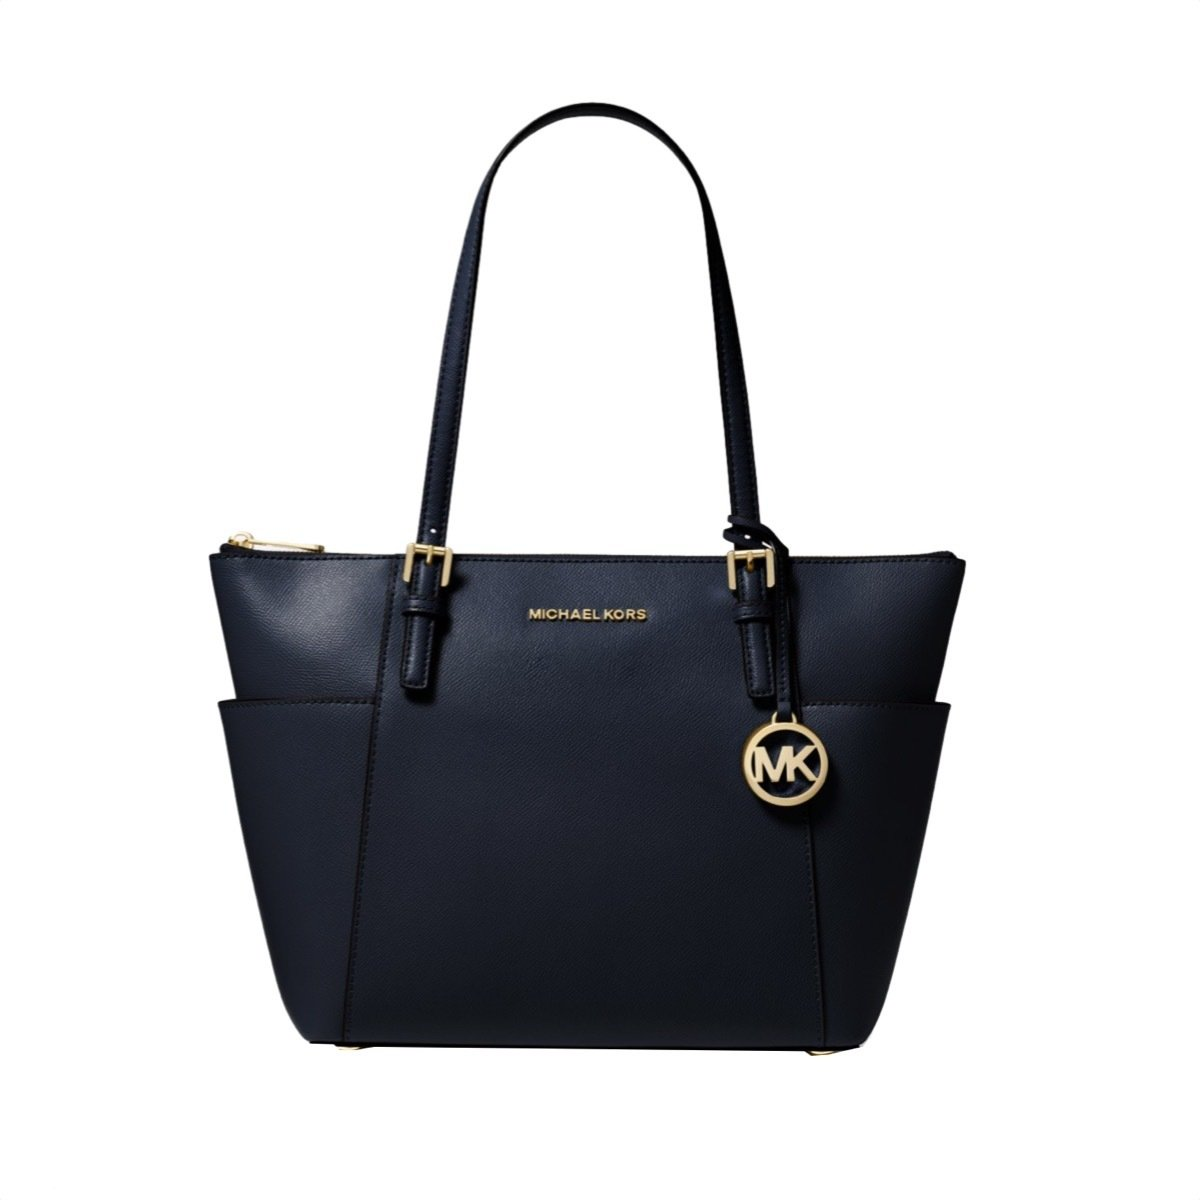 MICHAEL KORS - Shopping Tote MD - Admiral